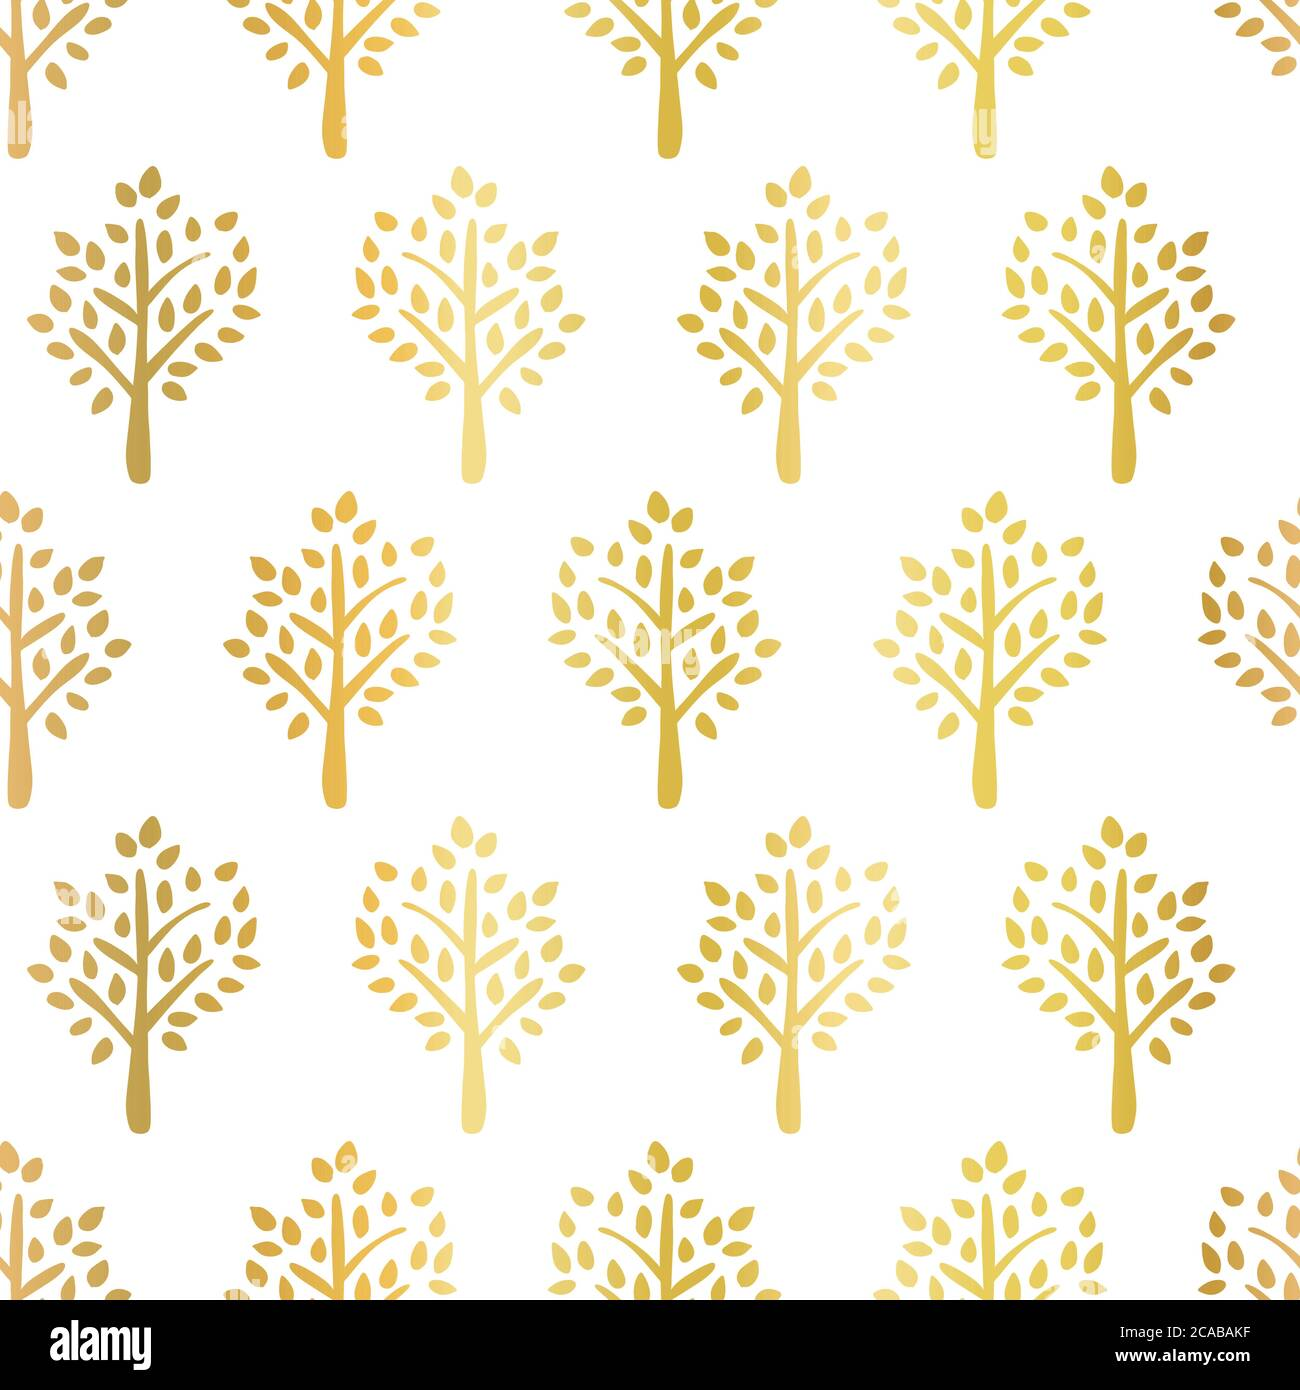 Gold Foil Trees Seamless Vector Pattern Tree Silhouettes Faux Golden Metallic On White Fall Background Use For Fabric Autumn Decor Thanksgiving Stock Vector Image Art Alamy